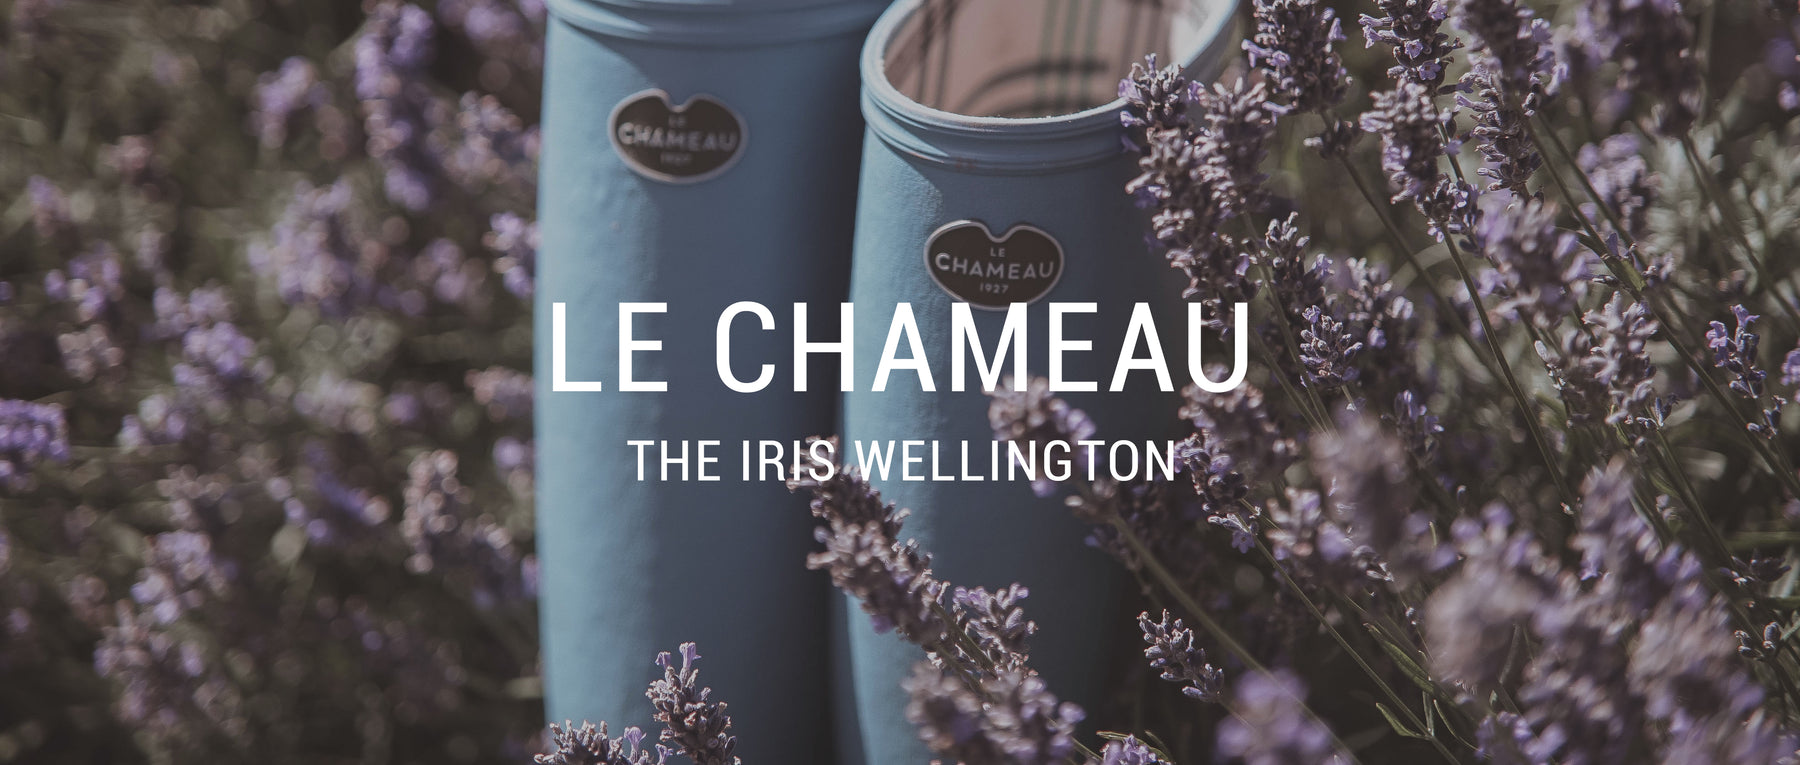 Brightening Rainy Days with Le Chameau